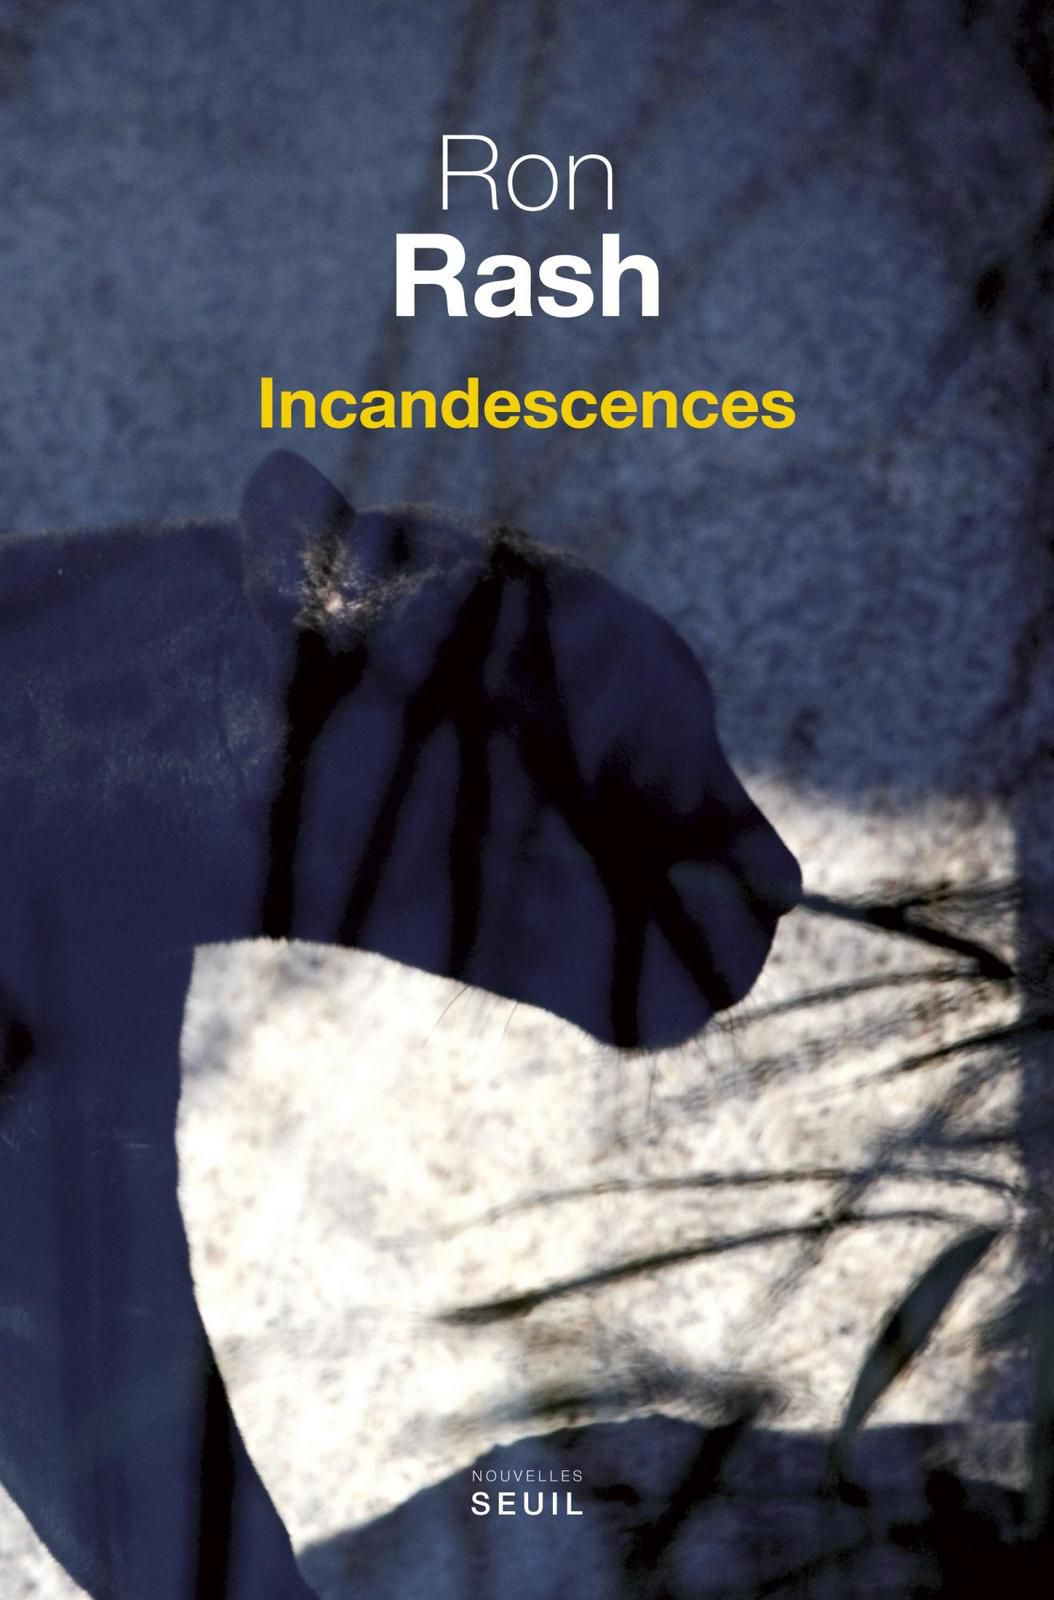 Incandescences - Ron RASH (Burning Bright, 2010), traduction de Isabelle RAINHAREZ, Seuil collection Cadre vert, 2015, 208 pages